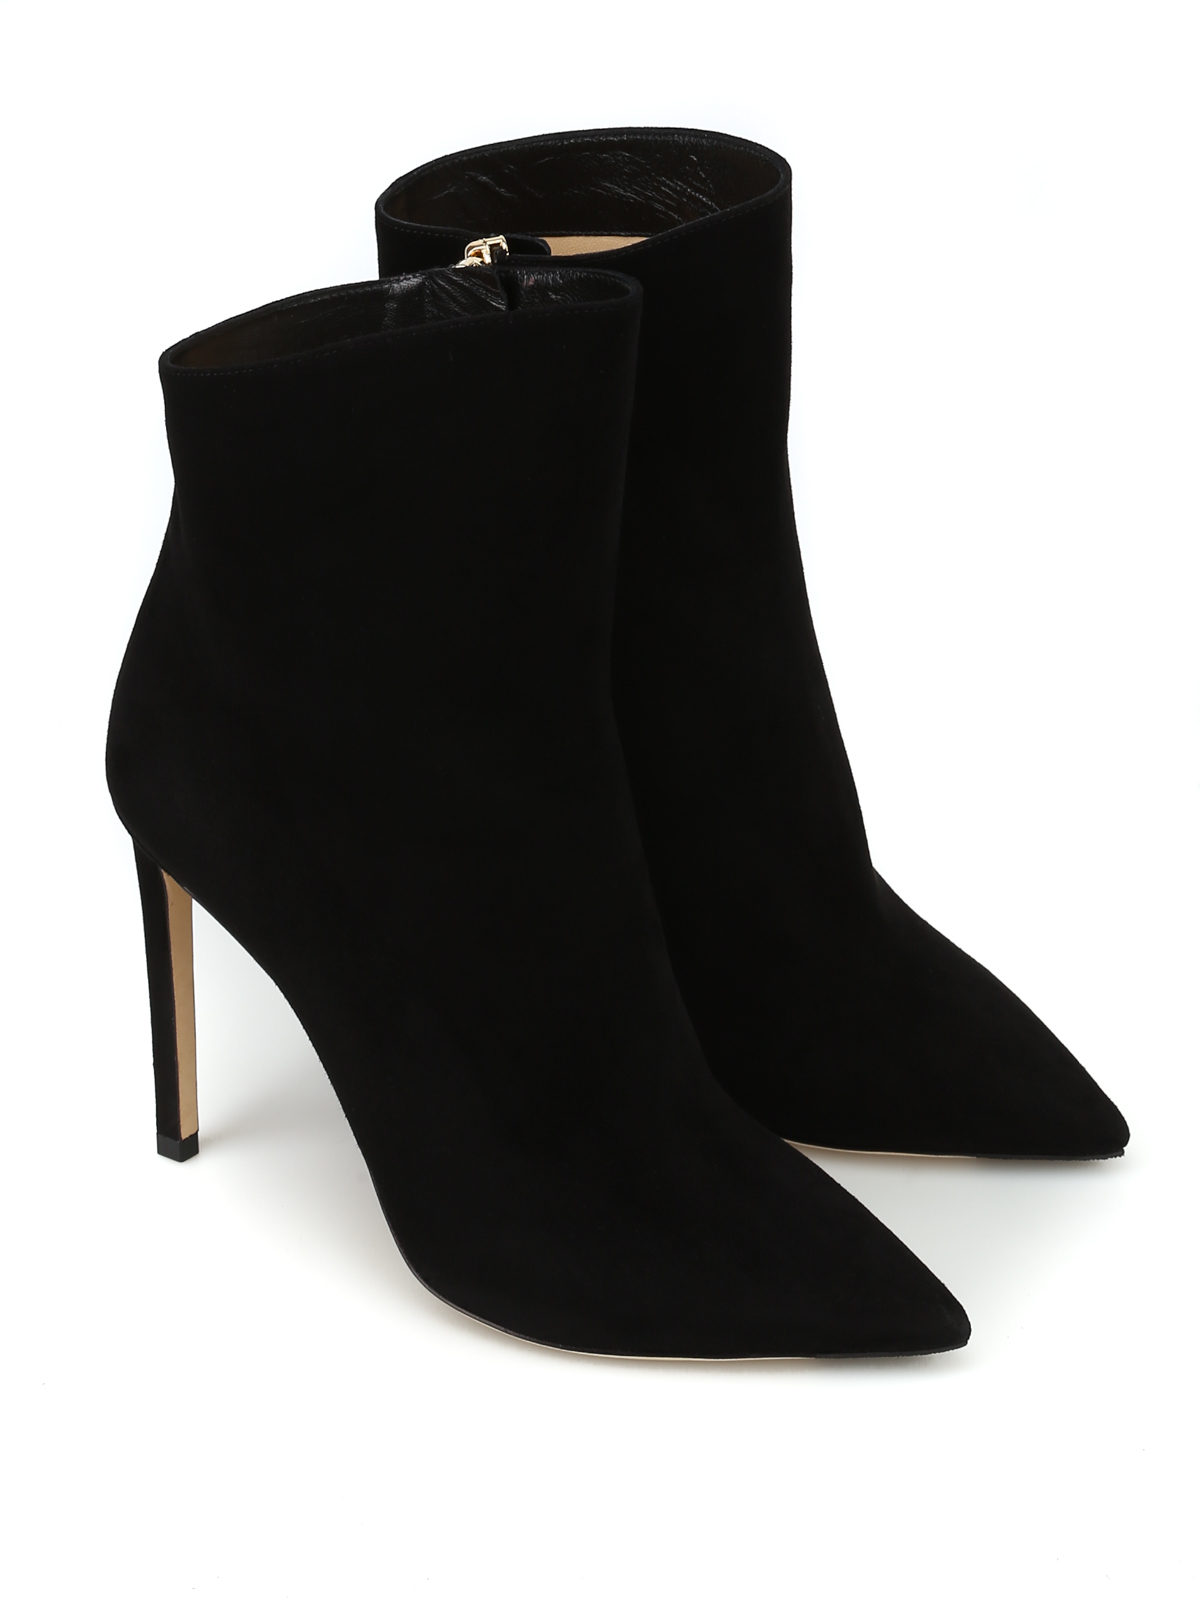 e6854cc925f7 JIMMY CHOO  ankle boots online - Helaine 100 black suede heeled booties